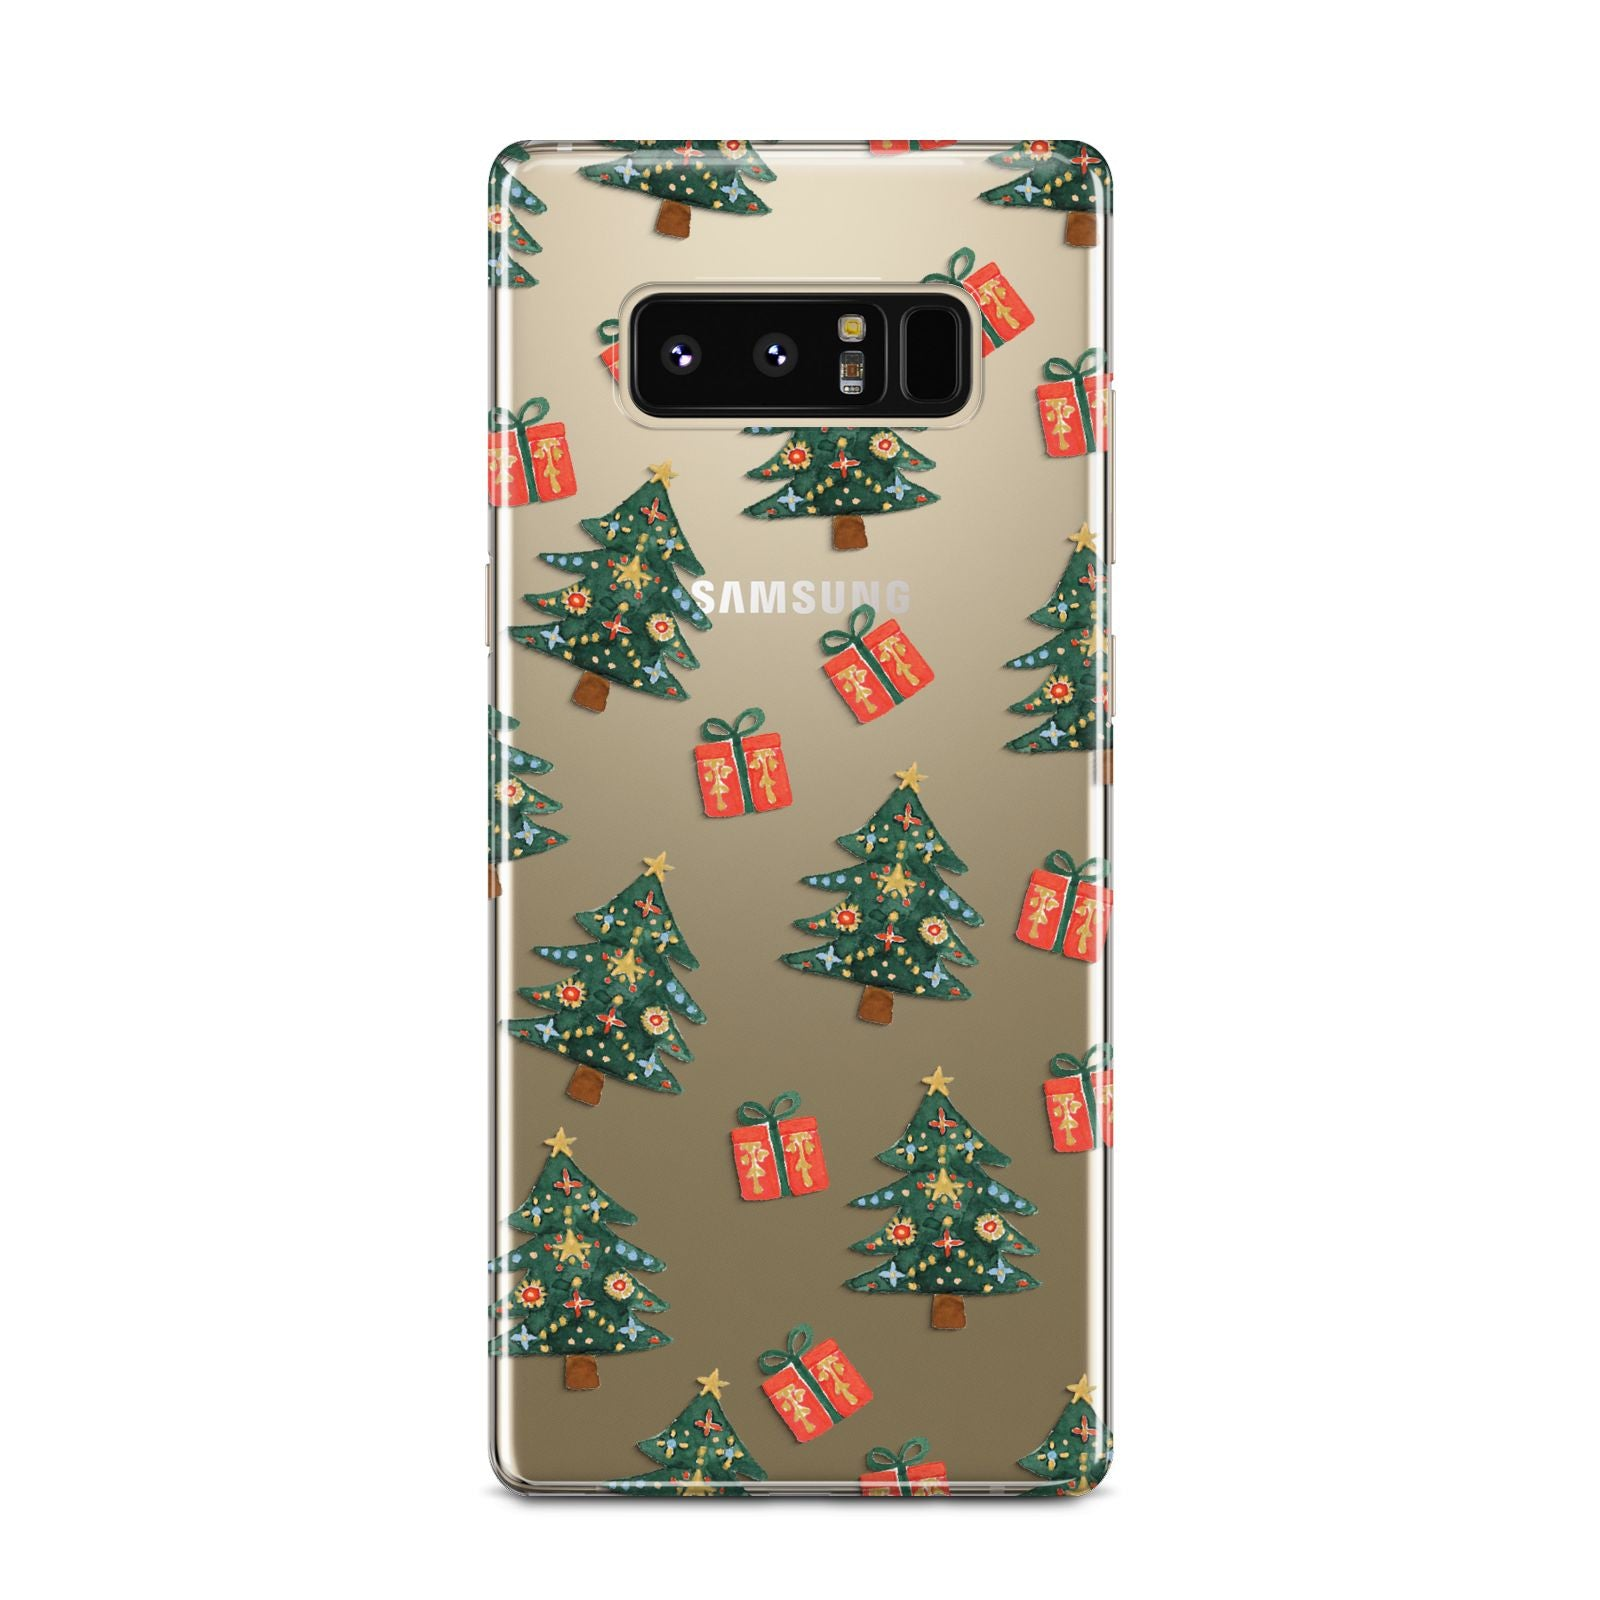 Christmas tree and presents Samsung Galaxy Note 8 Case